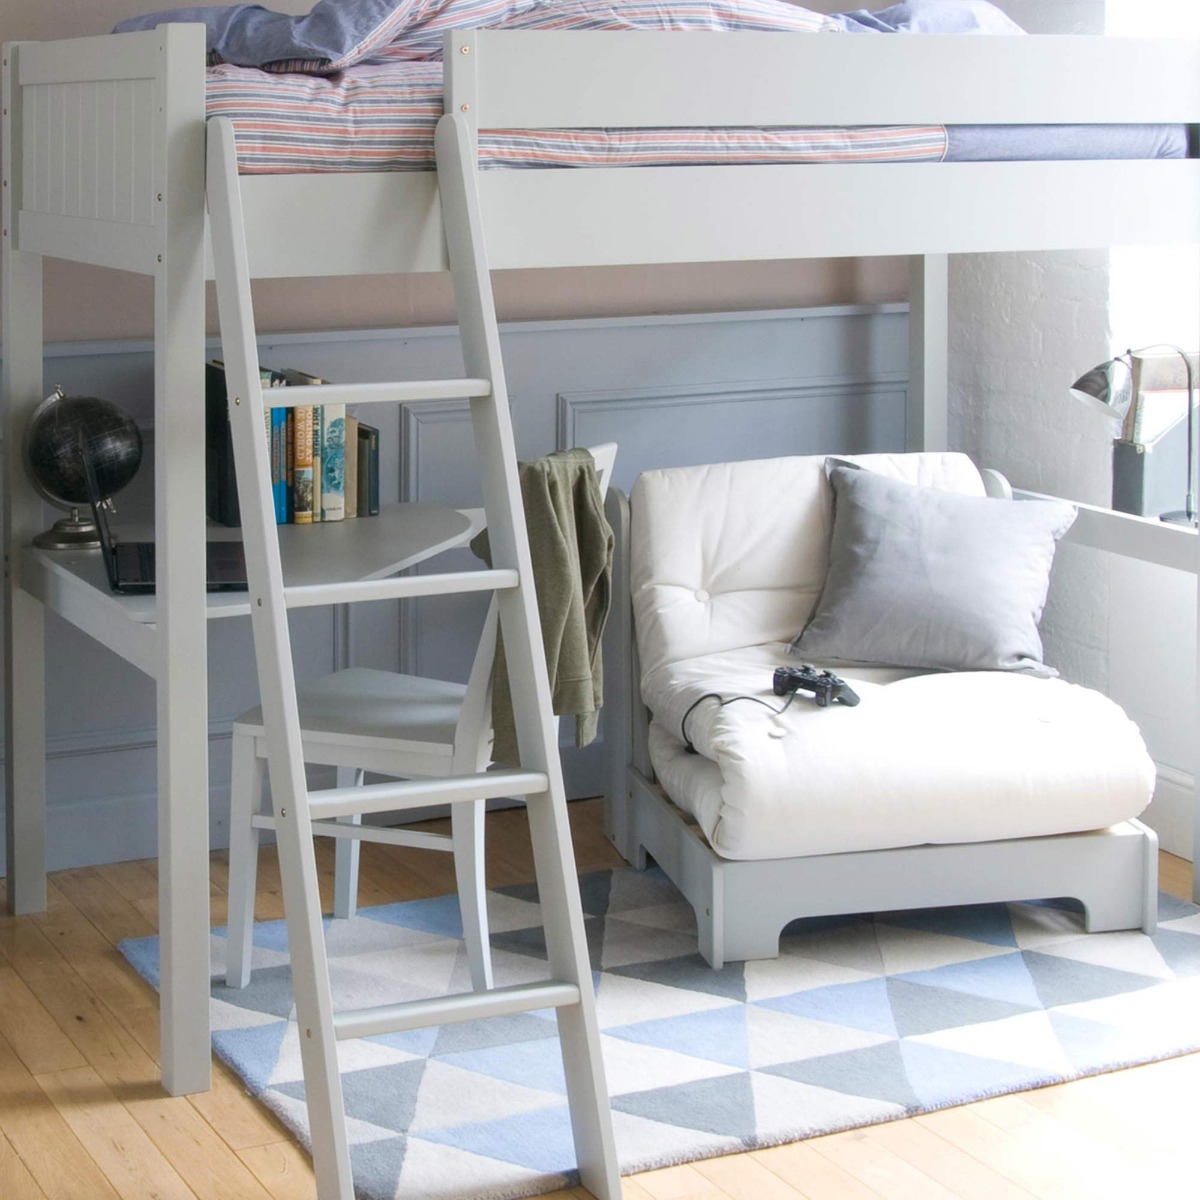 Snooze Bunk Beds The Savvy Parent S Guide To Buying A High Sleeper Bed Little